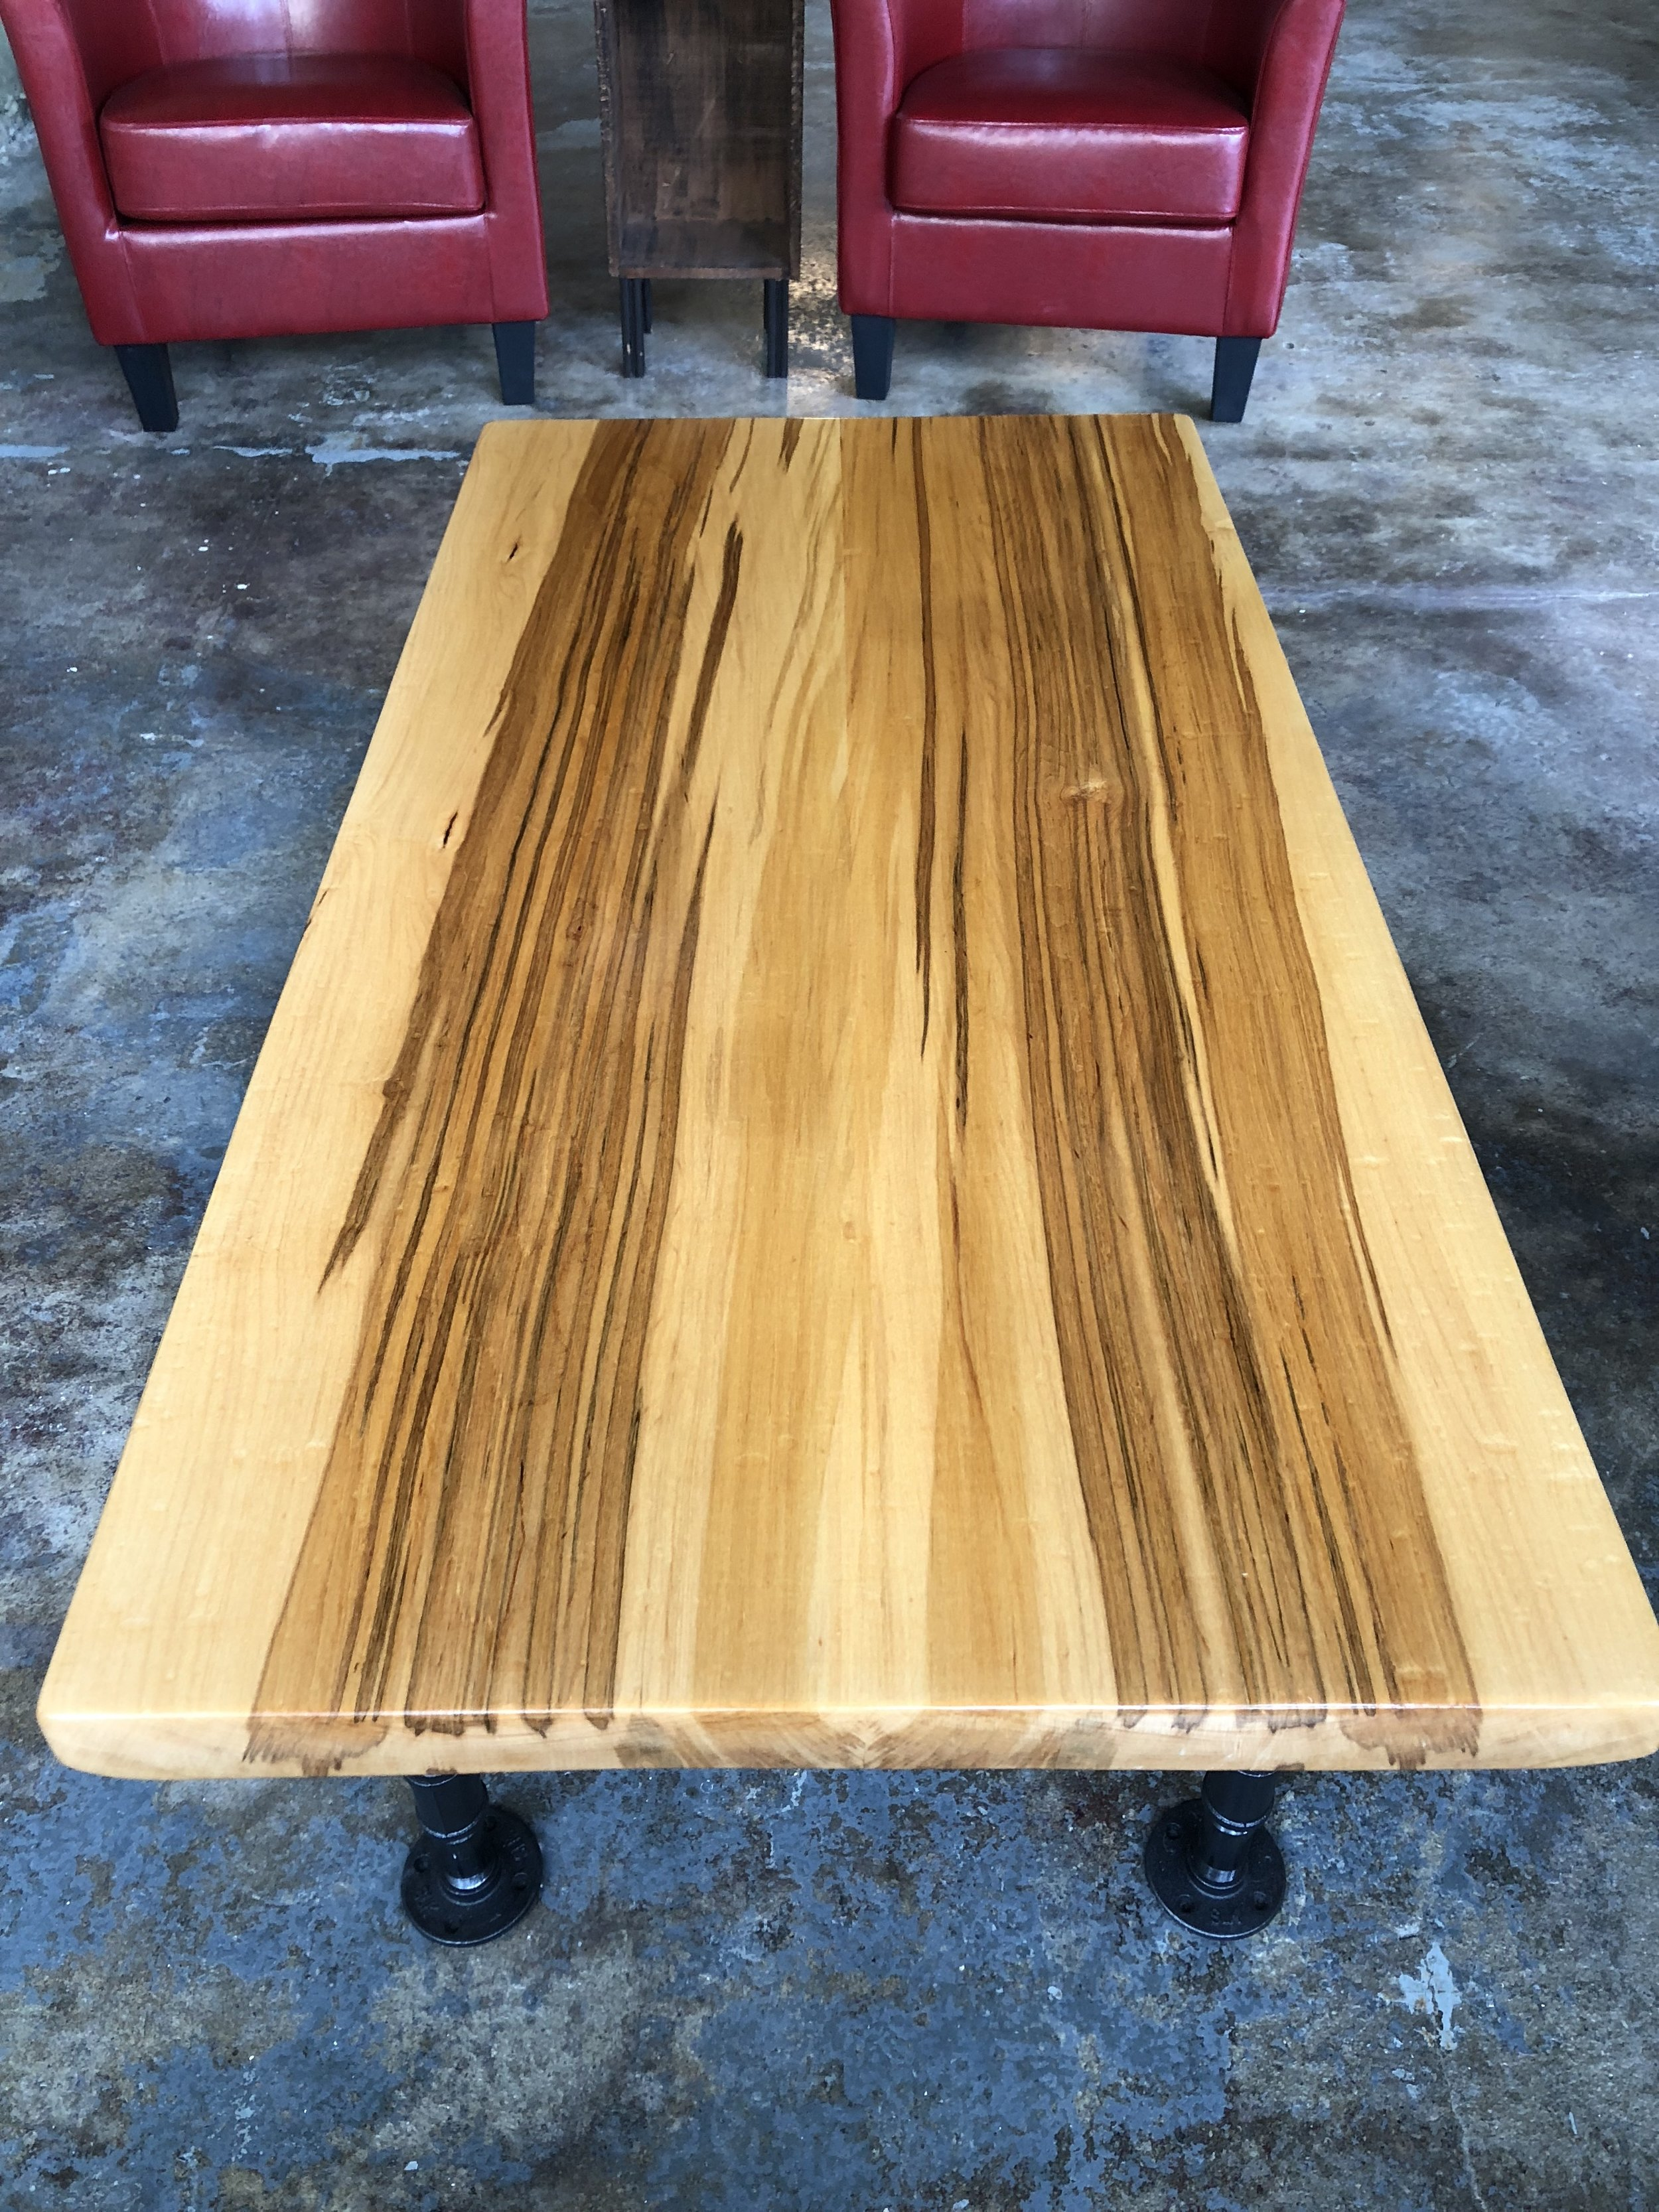 Table produced for Nseven Coffee Company, Grafton Wisconsin